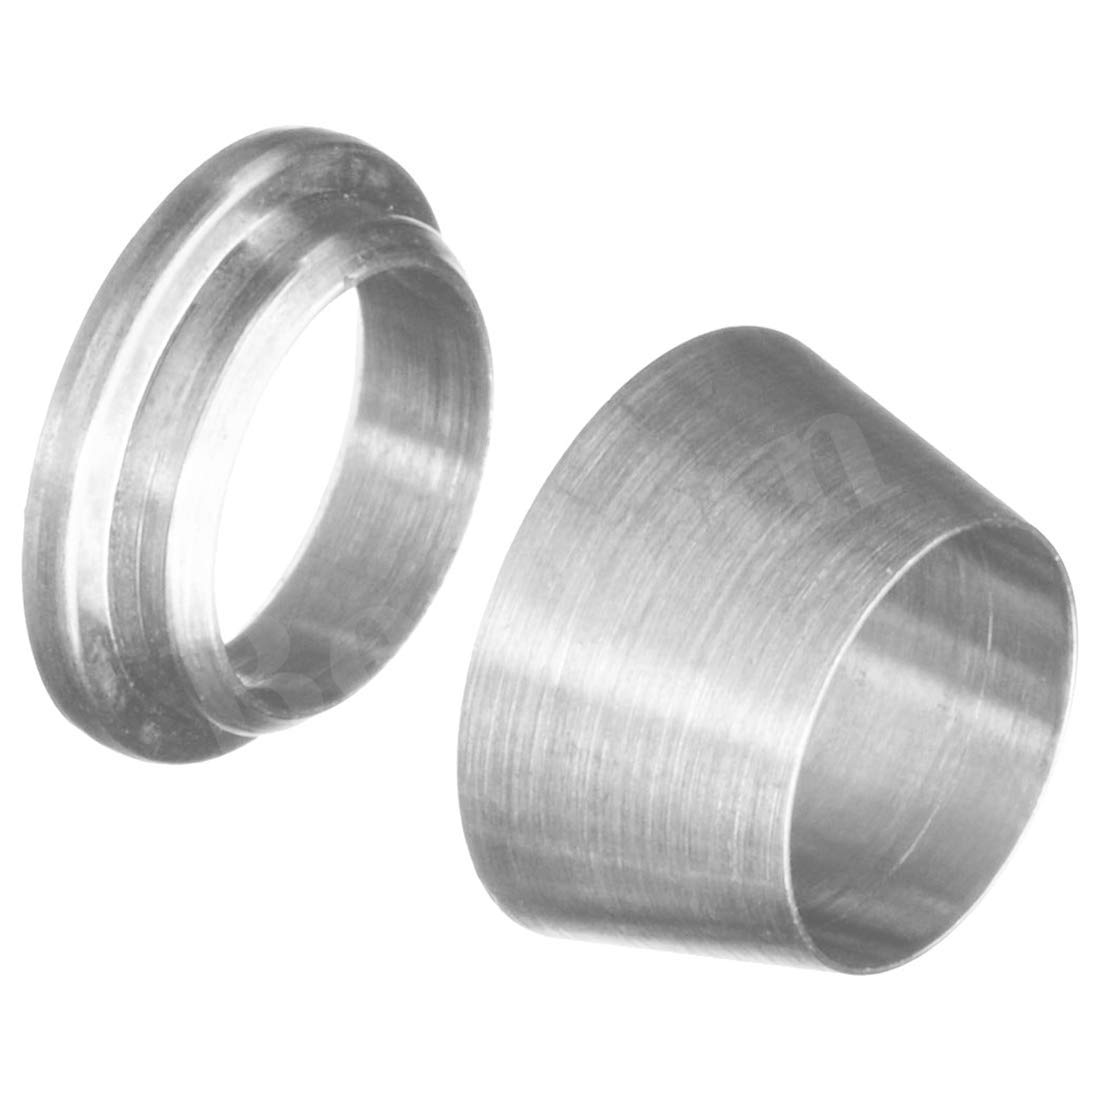 Beduan 304 Stainless Steel Compression 3 Ranking TOP13 Sleeve Genuine Free Shipping Ferrule Fitting